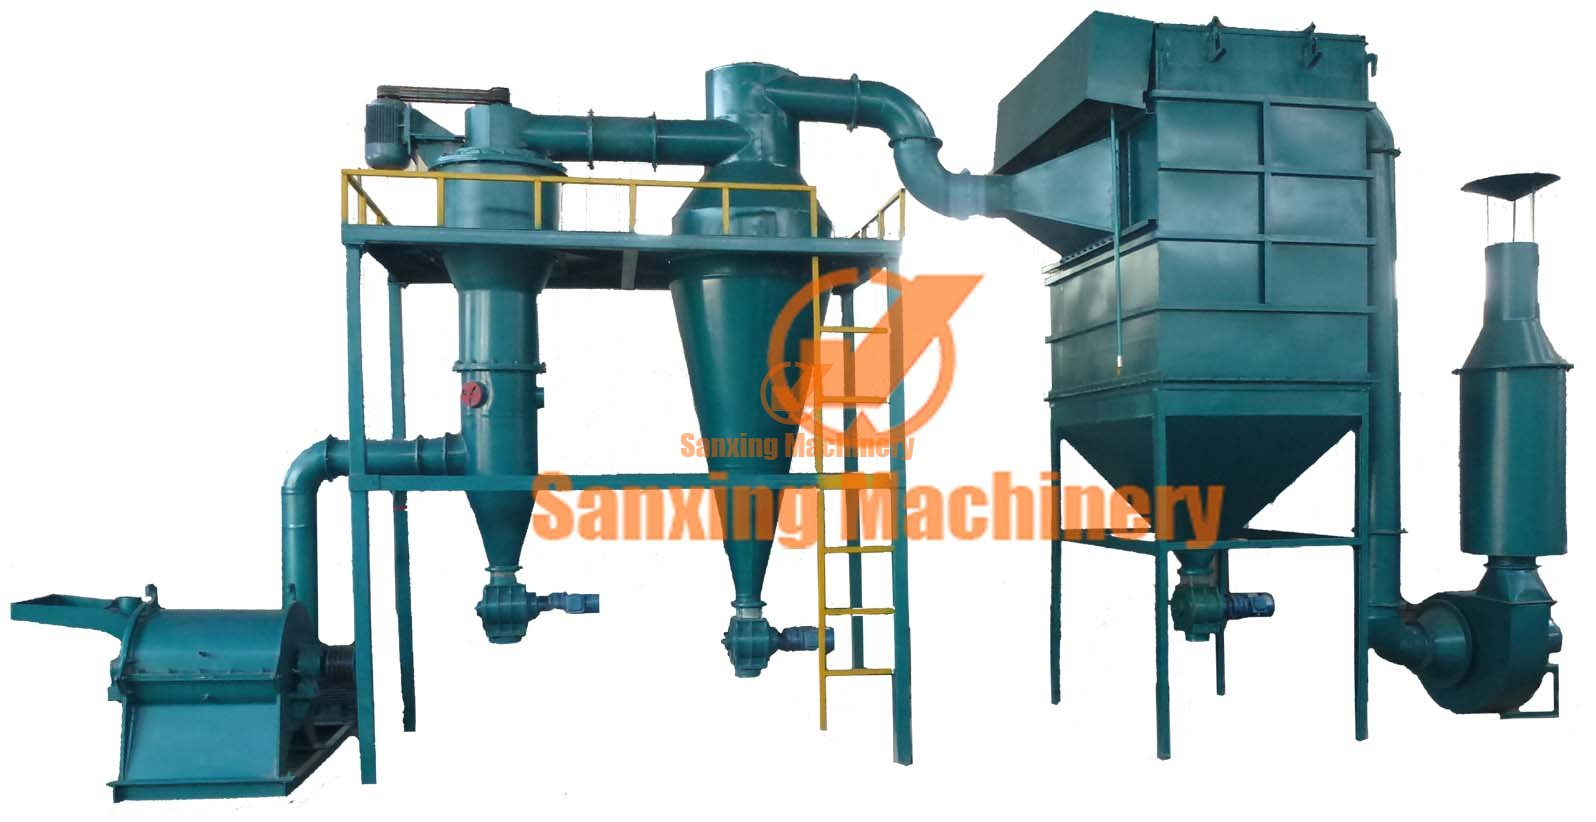 Fineness wood powder making machine